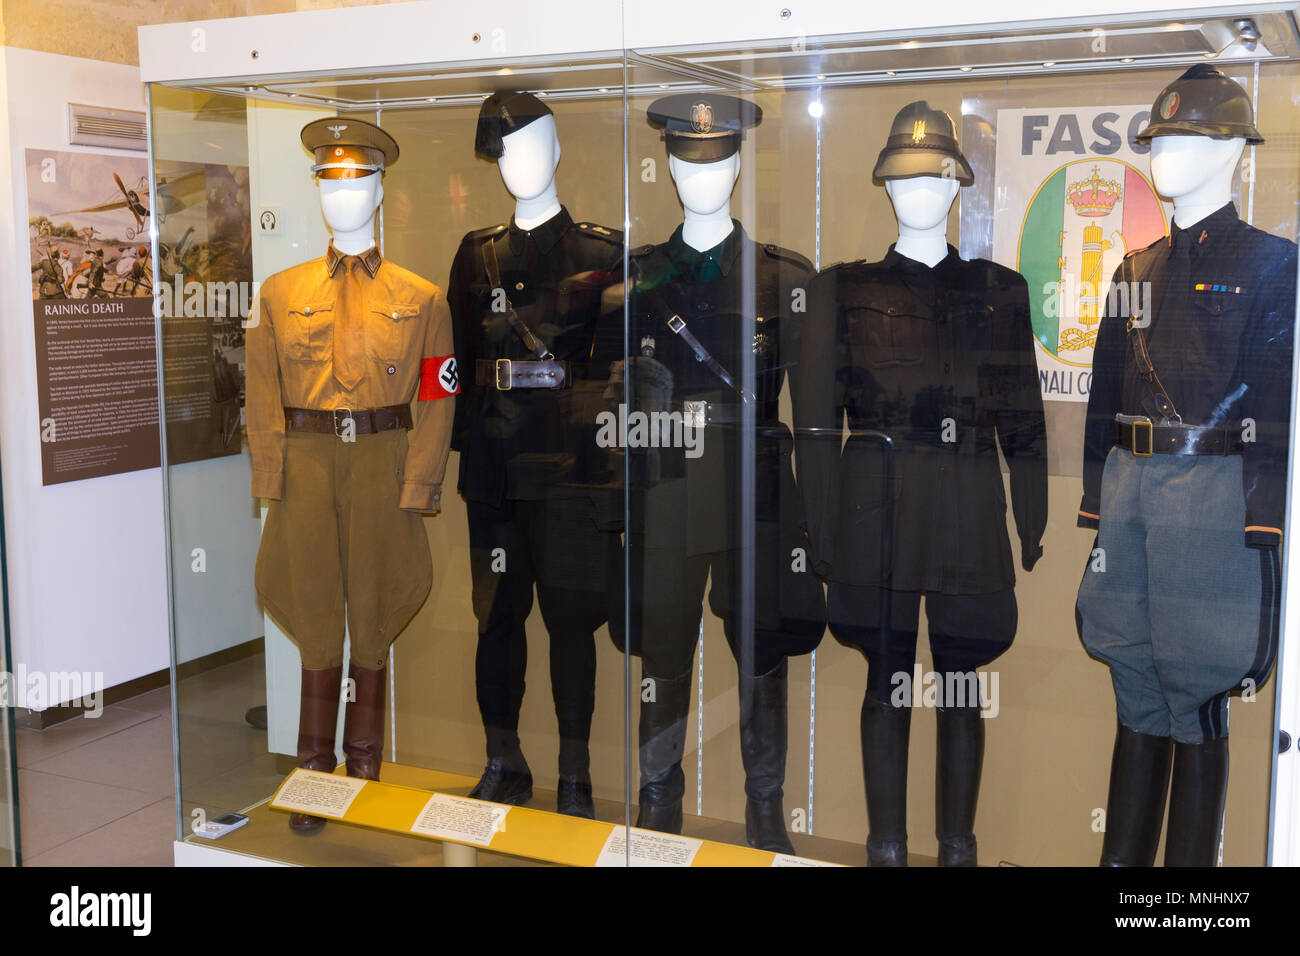 German Uniform Stock Photos & German Uniform Stock Images